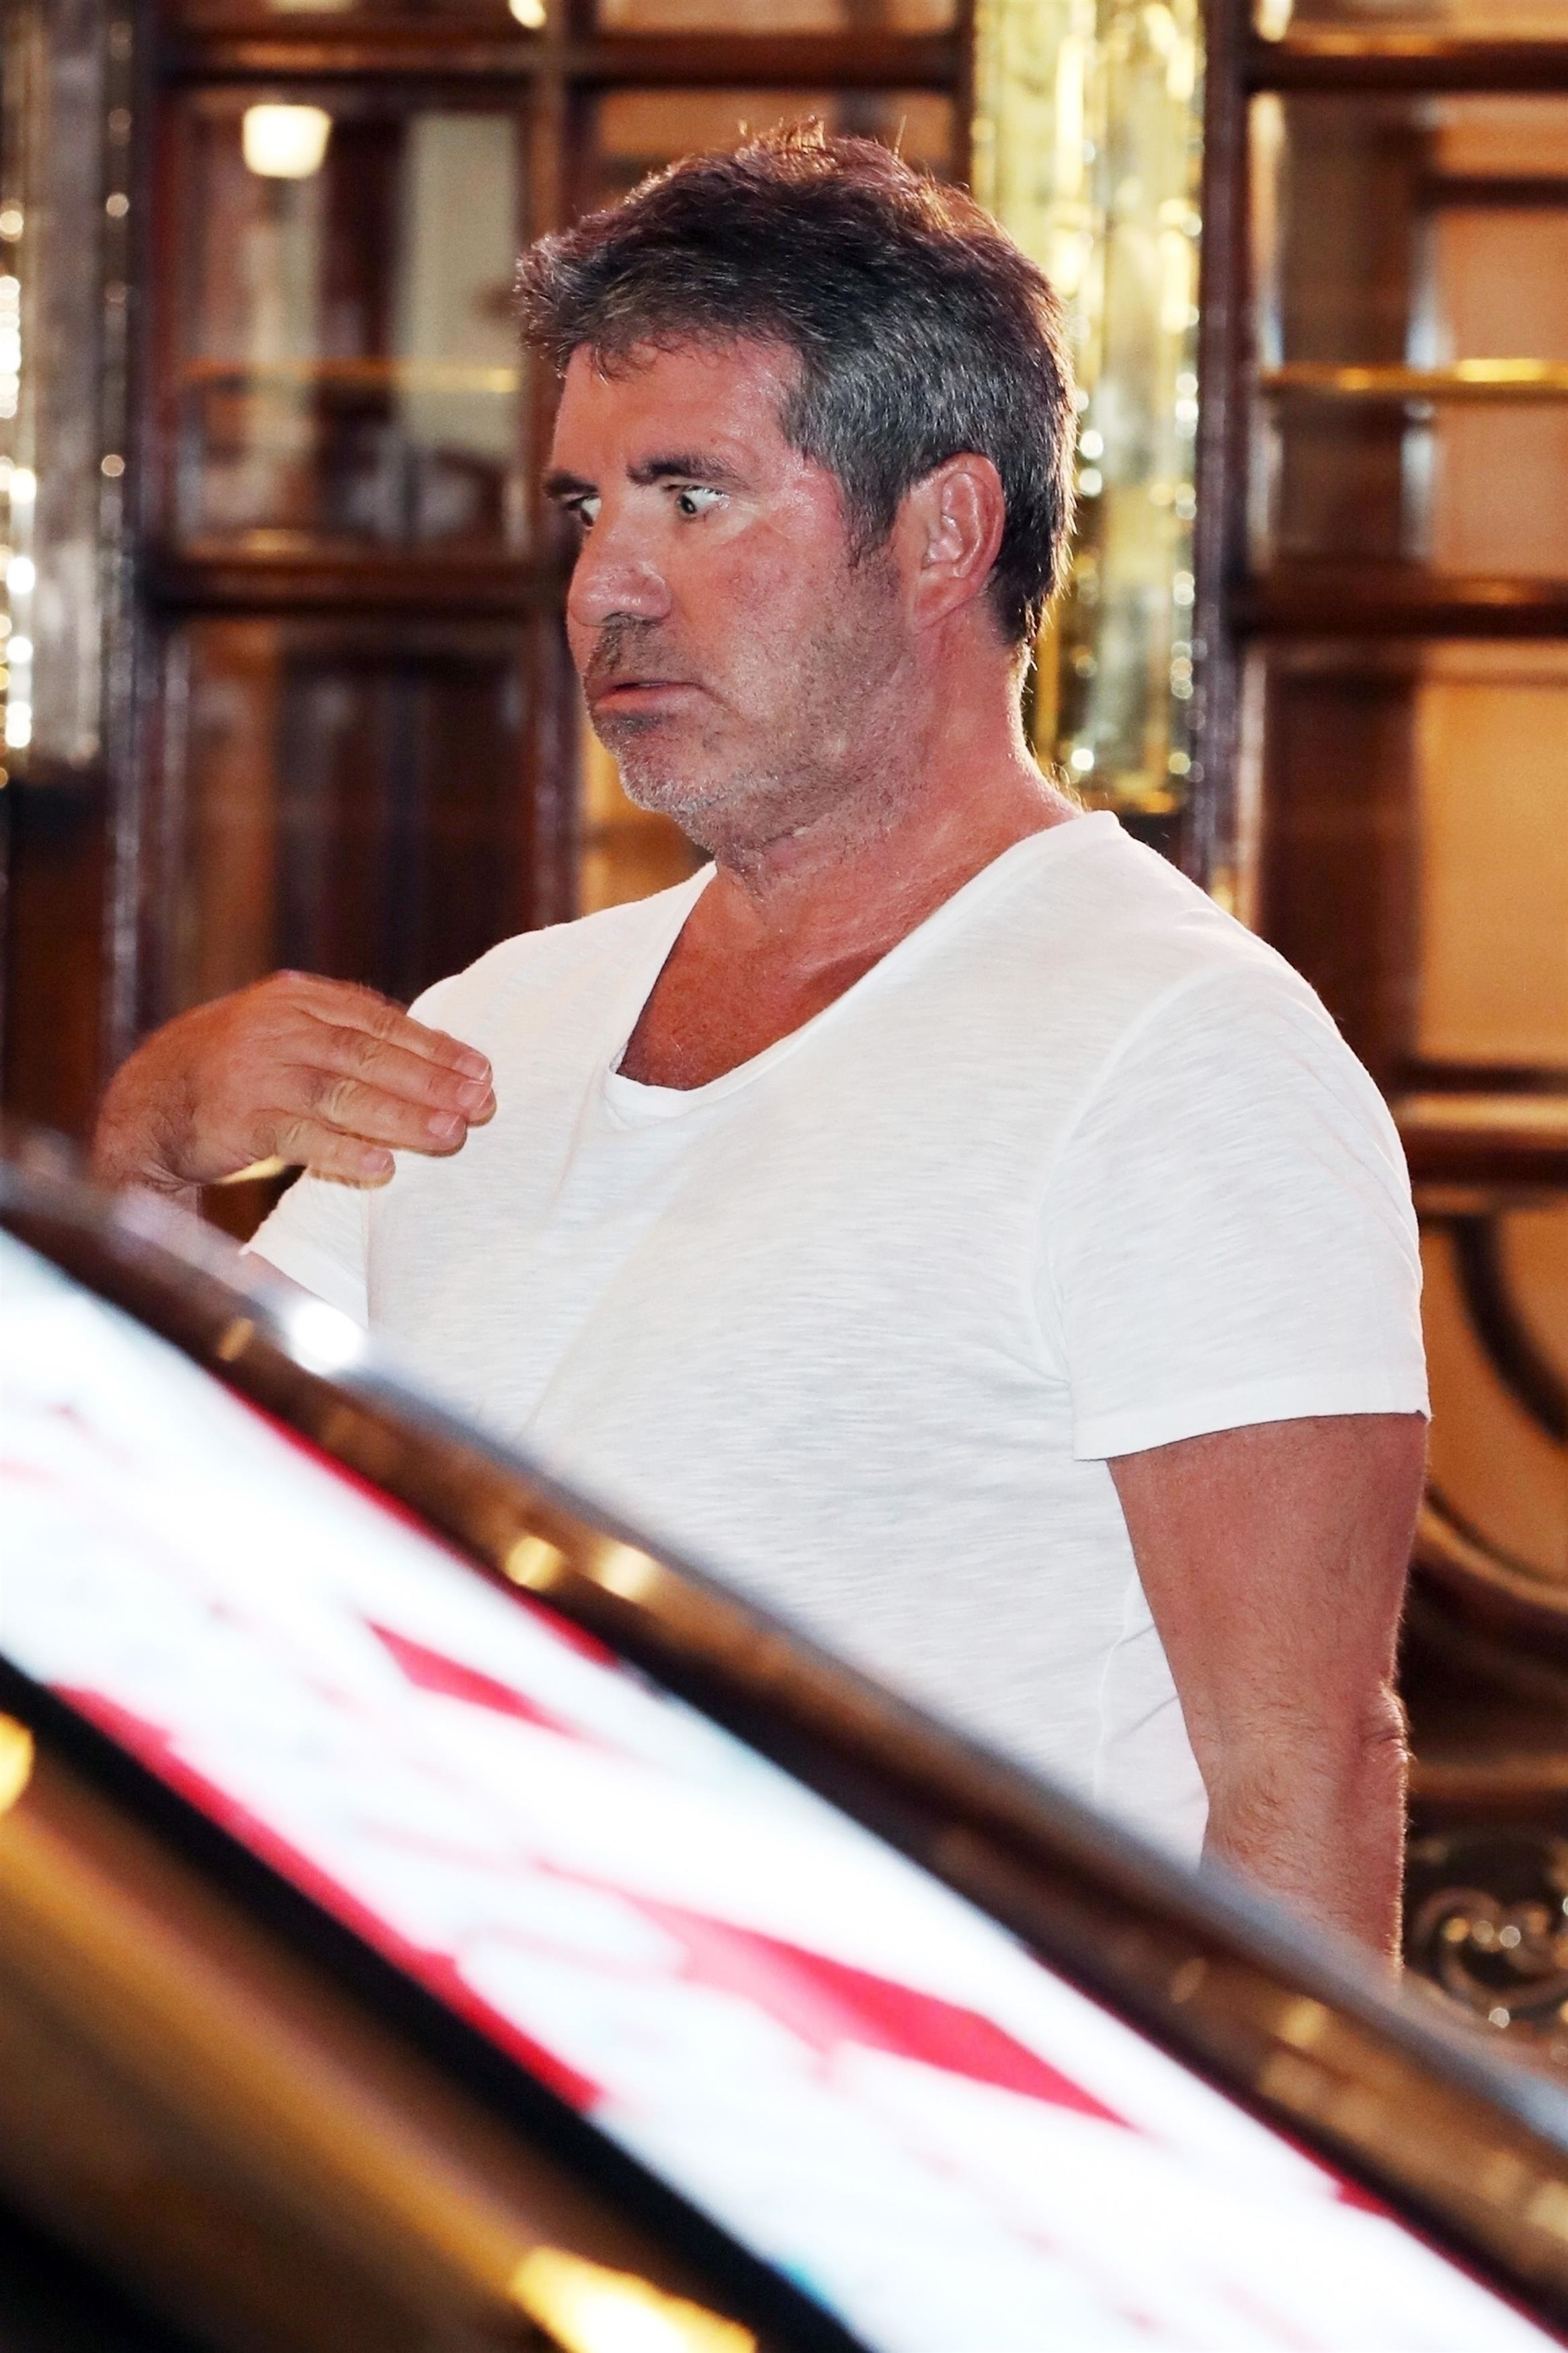 Simon Cowell leaves the set of 'Britain's Got Talent' after auditions held at the London Palladium on Jan. 20, 2019.